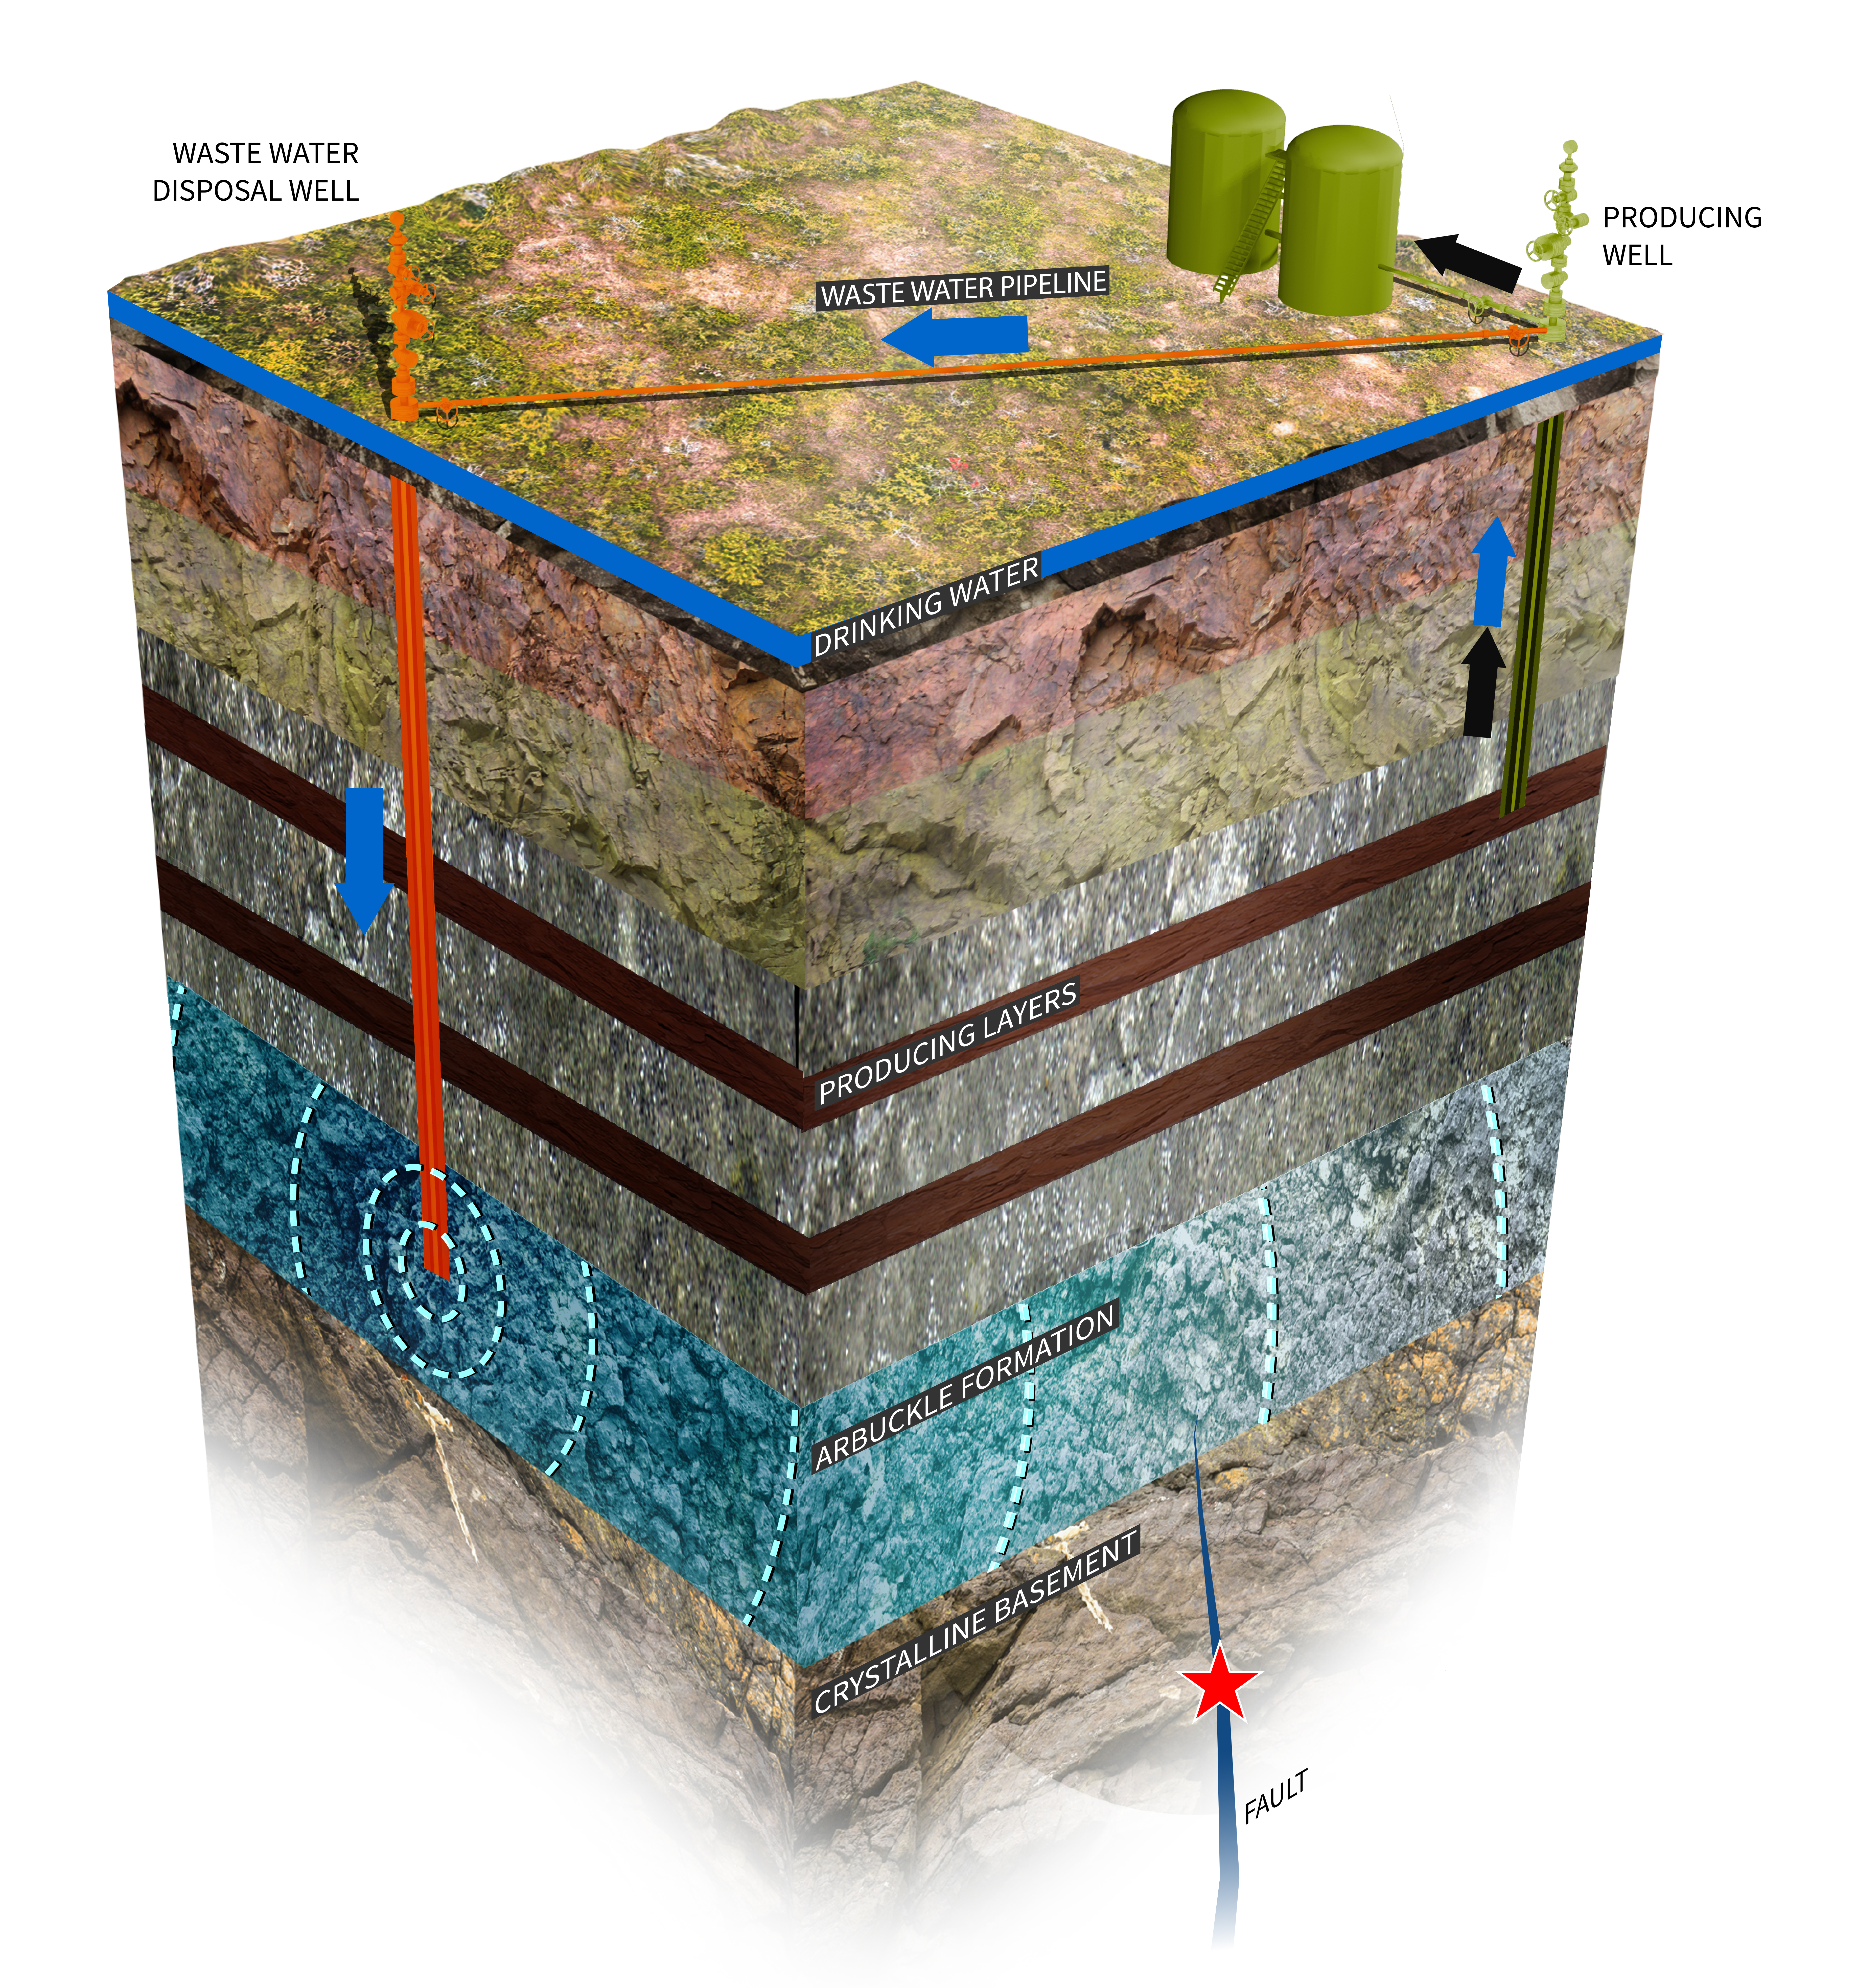 Deep injection of oilfield wastewater into rock known as the Arbuckle formation has triggered multiple earthquakes in Oklahoma.